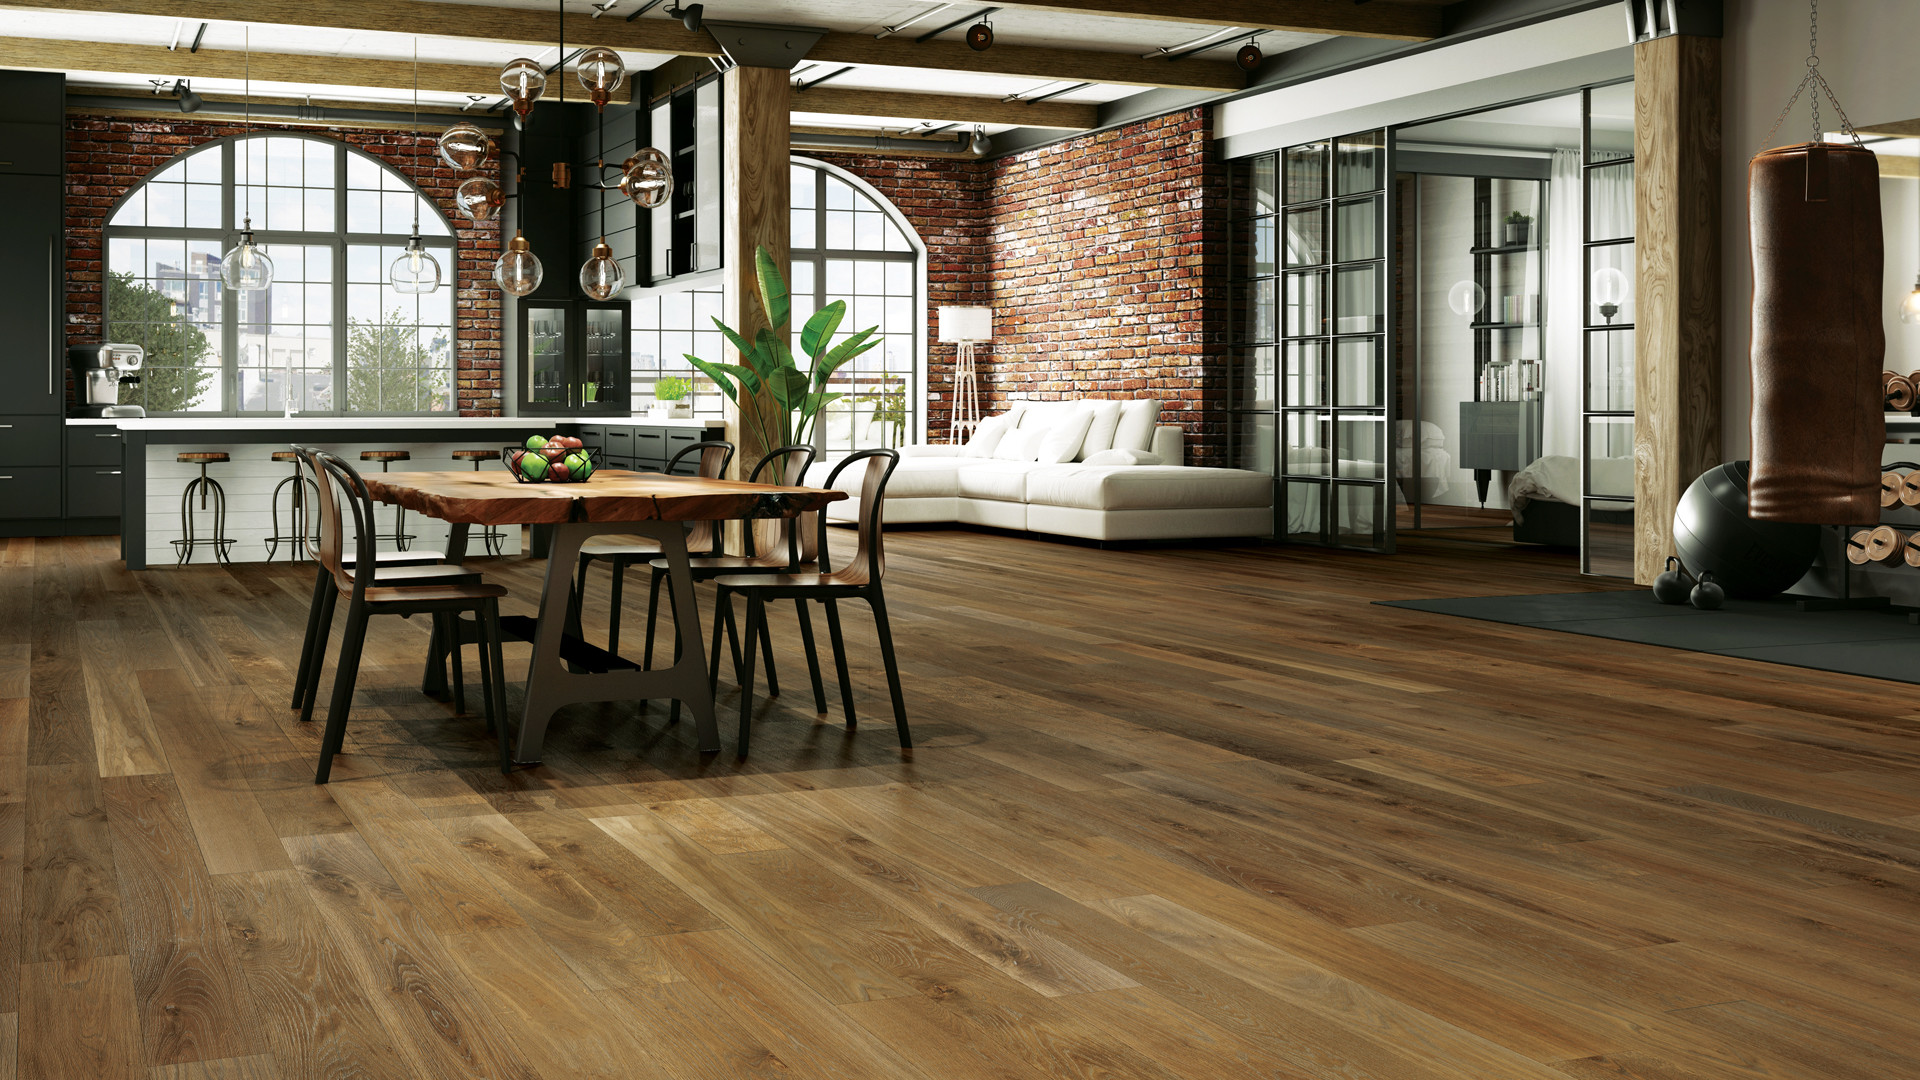 11 Fantastic Grey Hardwood Floor Colors 2021 free download grey hardwood floor colors of 4 latest hardwood flooring trends of 2018 lauzon flooring intended for combined with a wire brushed texture and an ultra matte sheen these new 7ac2bd wide white